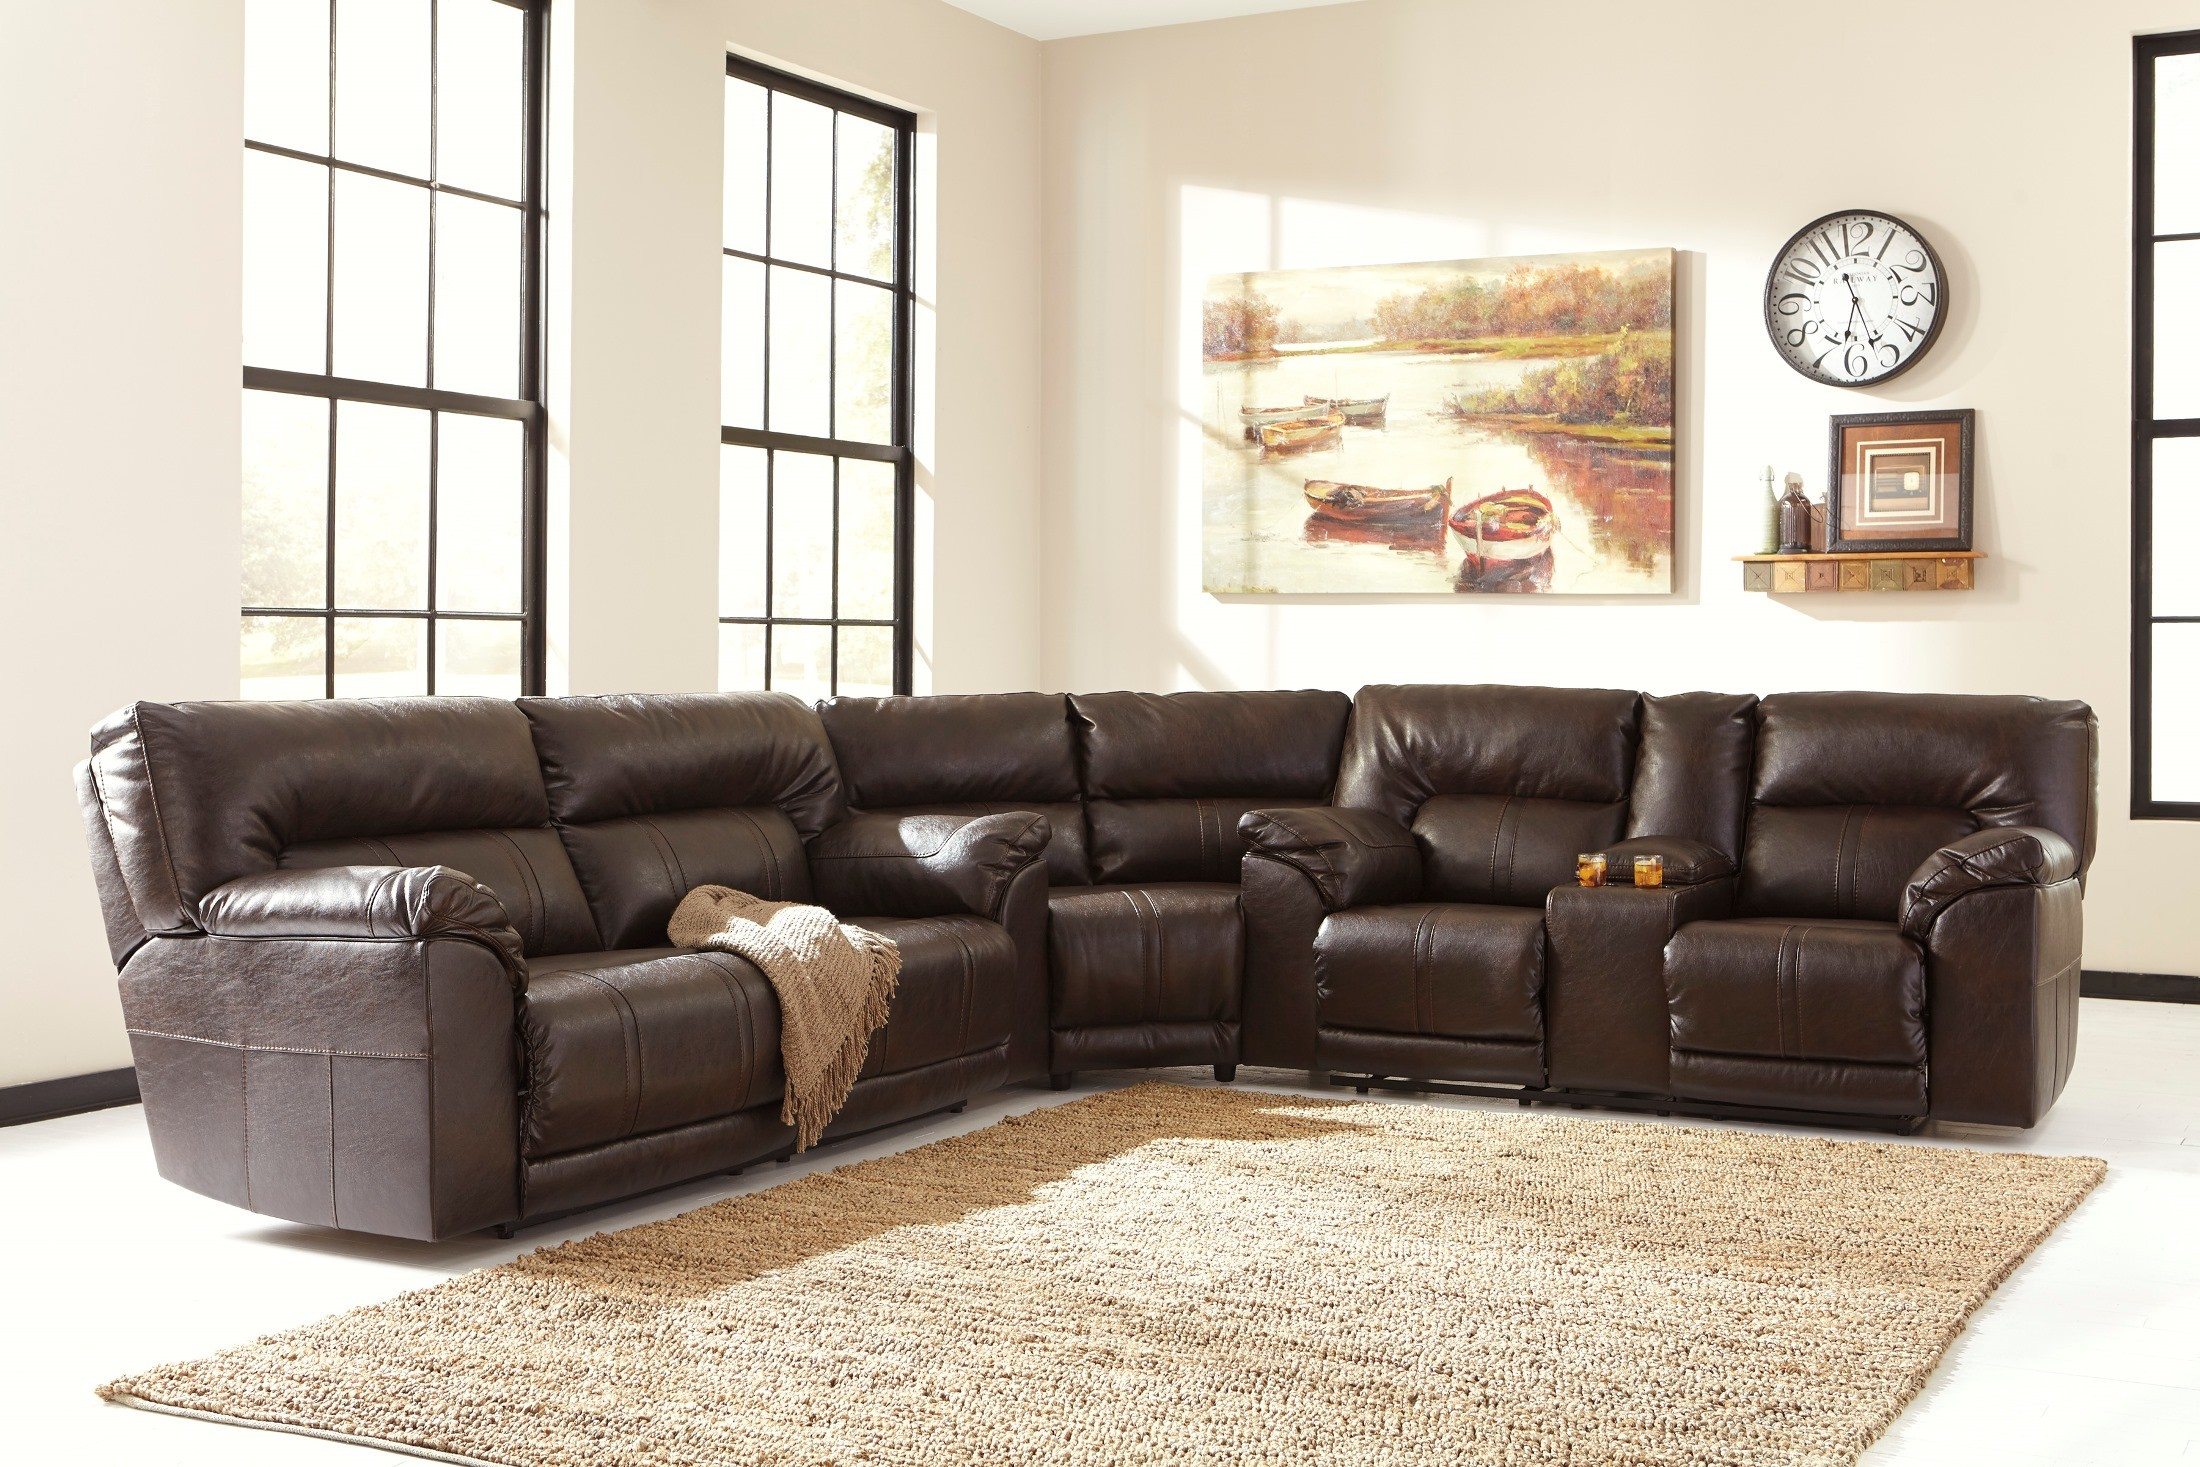 Barrettsville Durablend Chocolate Power Reclining Sectional From Ashley 4730147 96 77